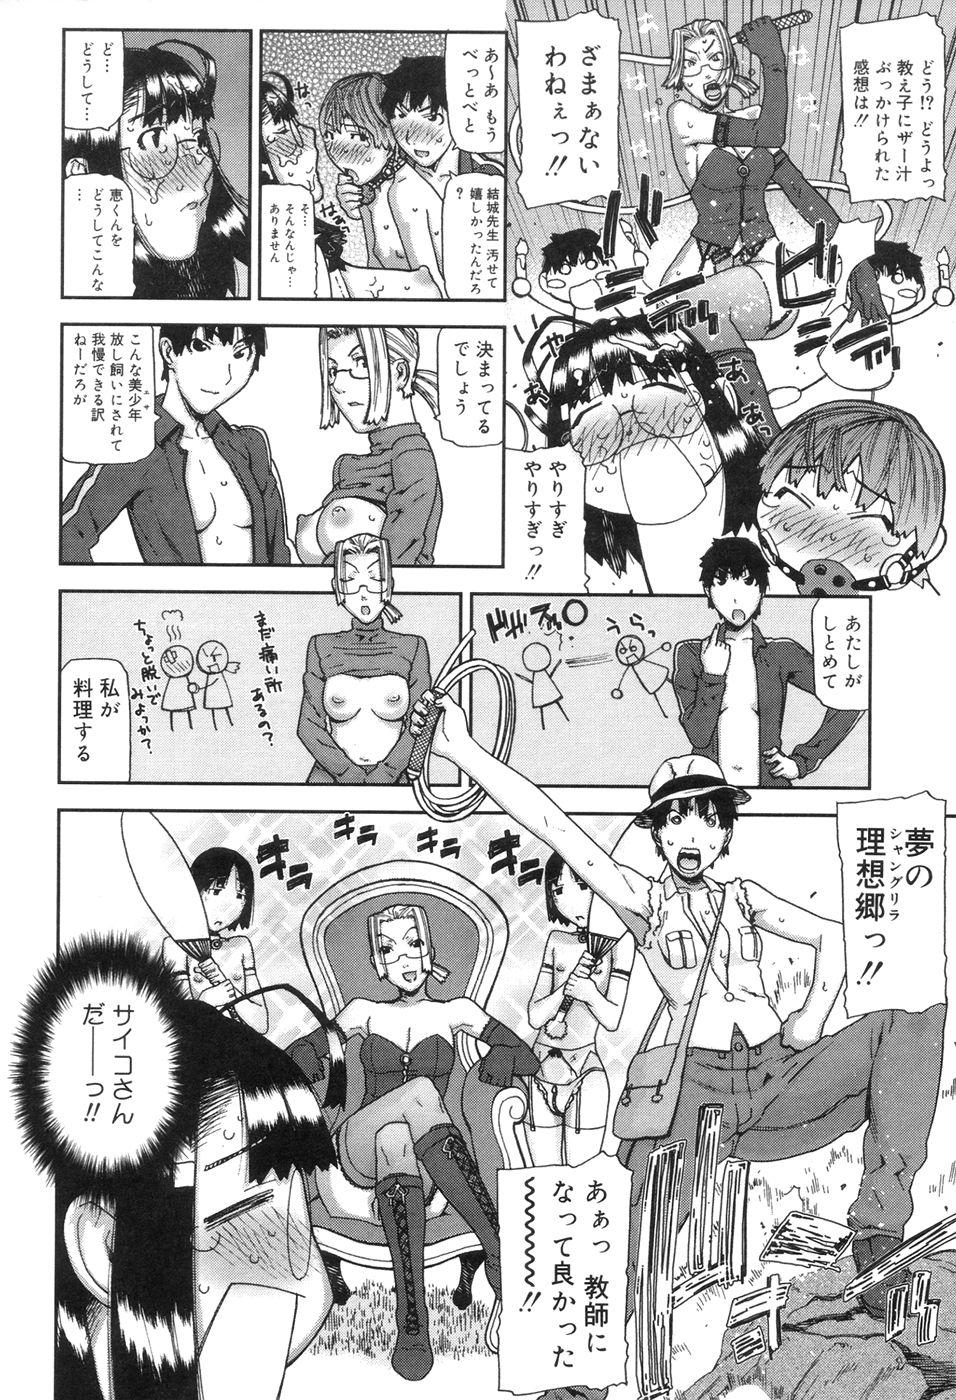 Onee-chan to issho 65